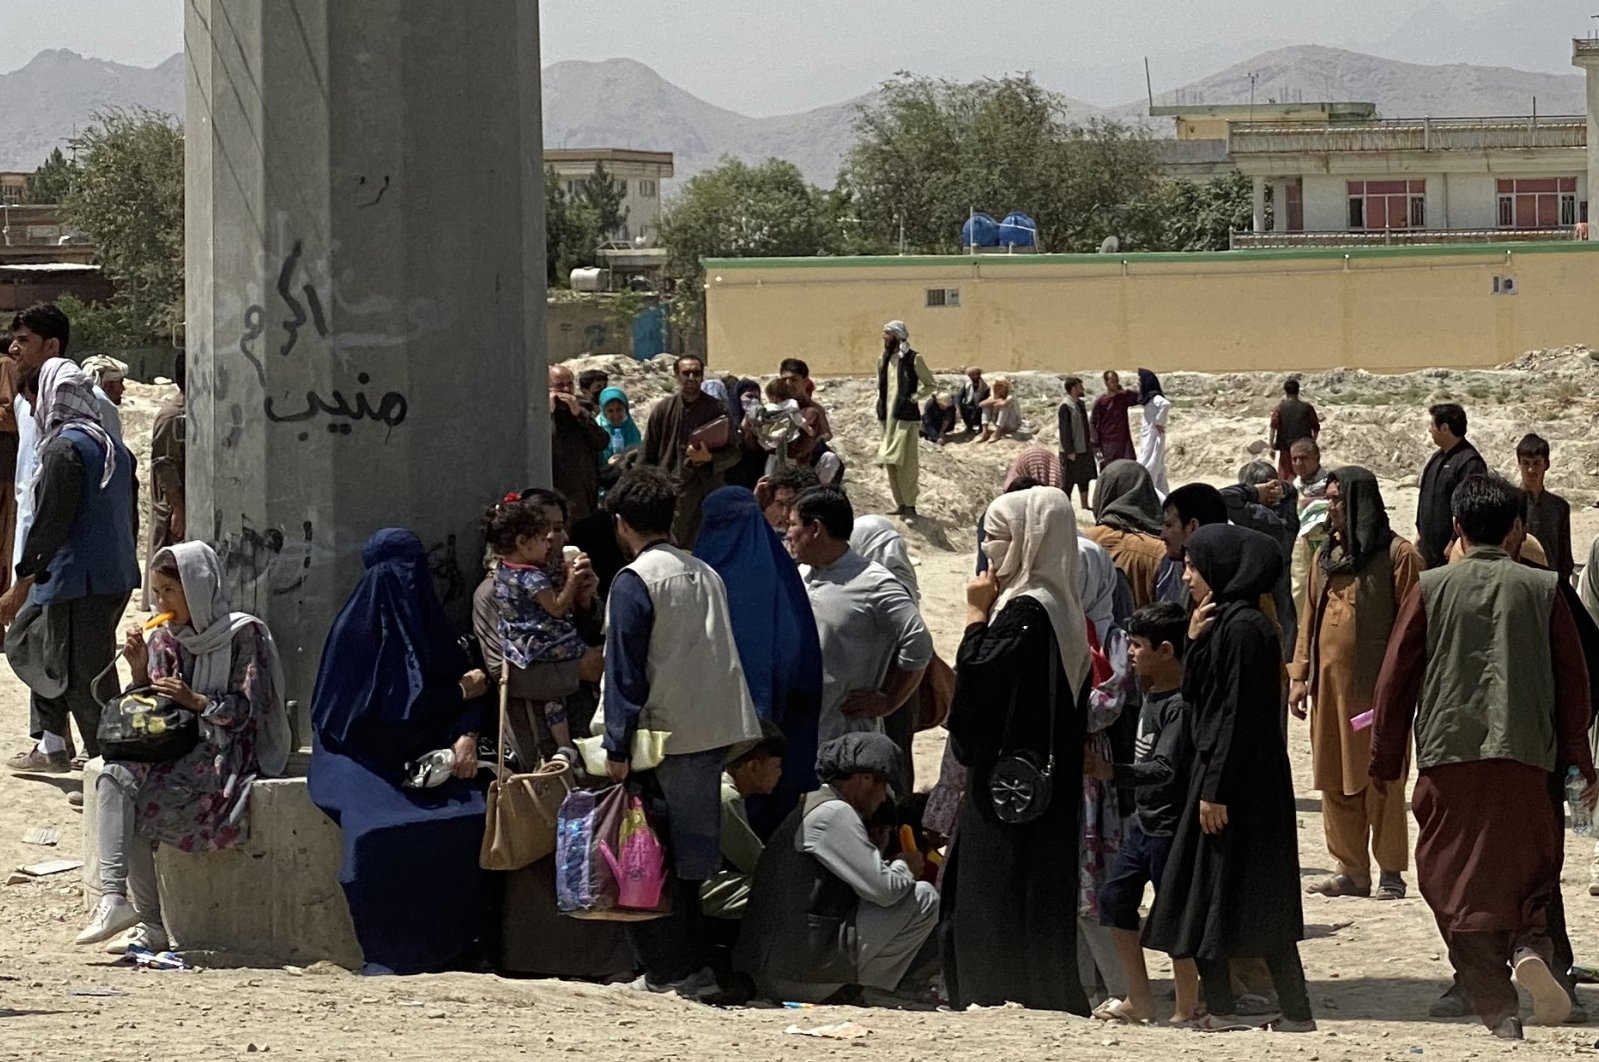 Afghans gather outside the Hamid Karzai International Airport to flee the country, after Taliban took control of Kabul, Afghanistan, Aug. 17, 2021. (EPA Photo)